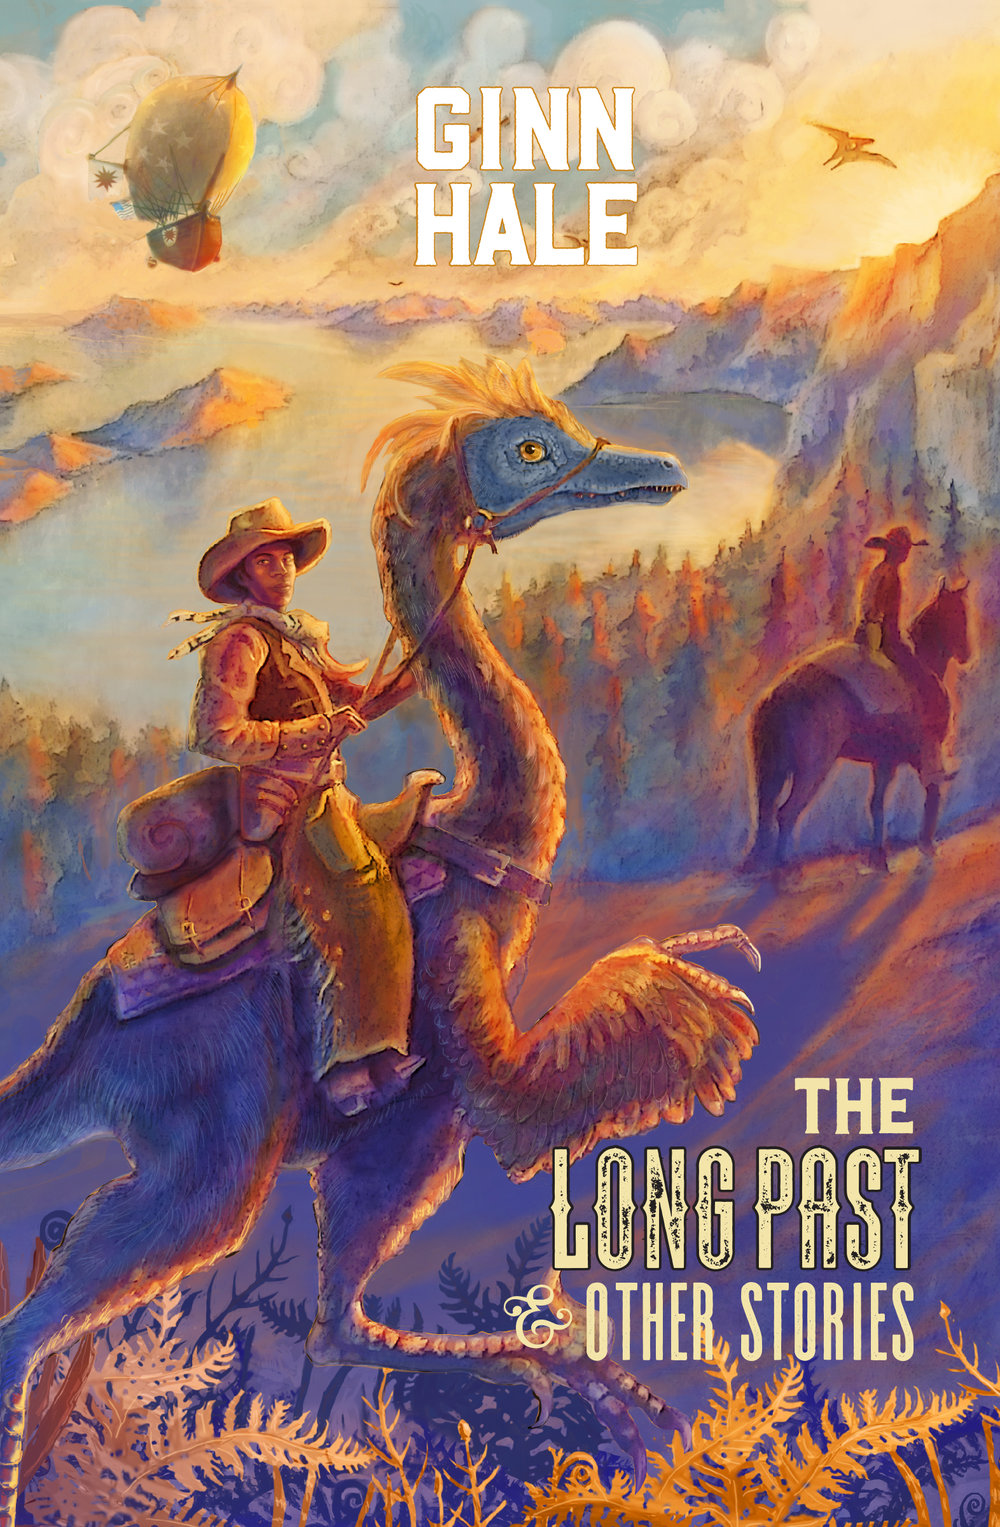 Guest Post and Giveaway: The Long Past and Other Stories by Ginn Hale